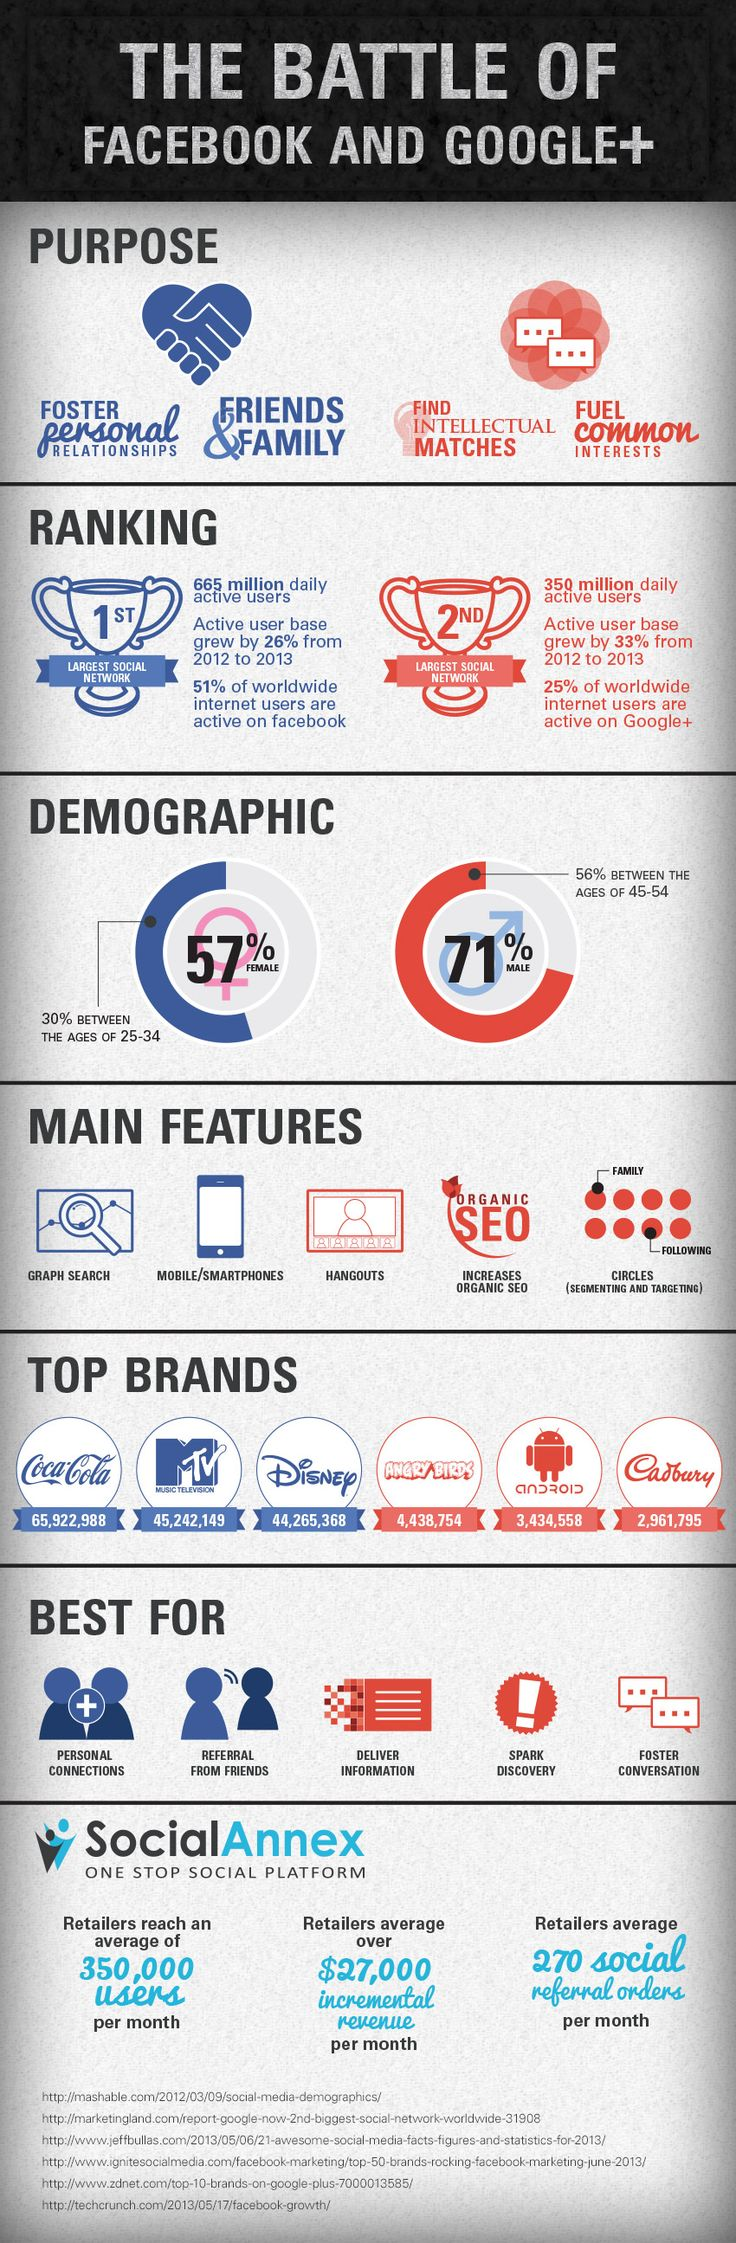 Google Plus Vs Facebook [infographic] via http://www.digitalinformationworld.com/2013/09/google-plus-vs-facebook-infographic.html